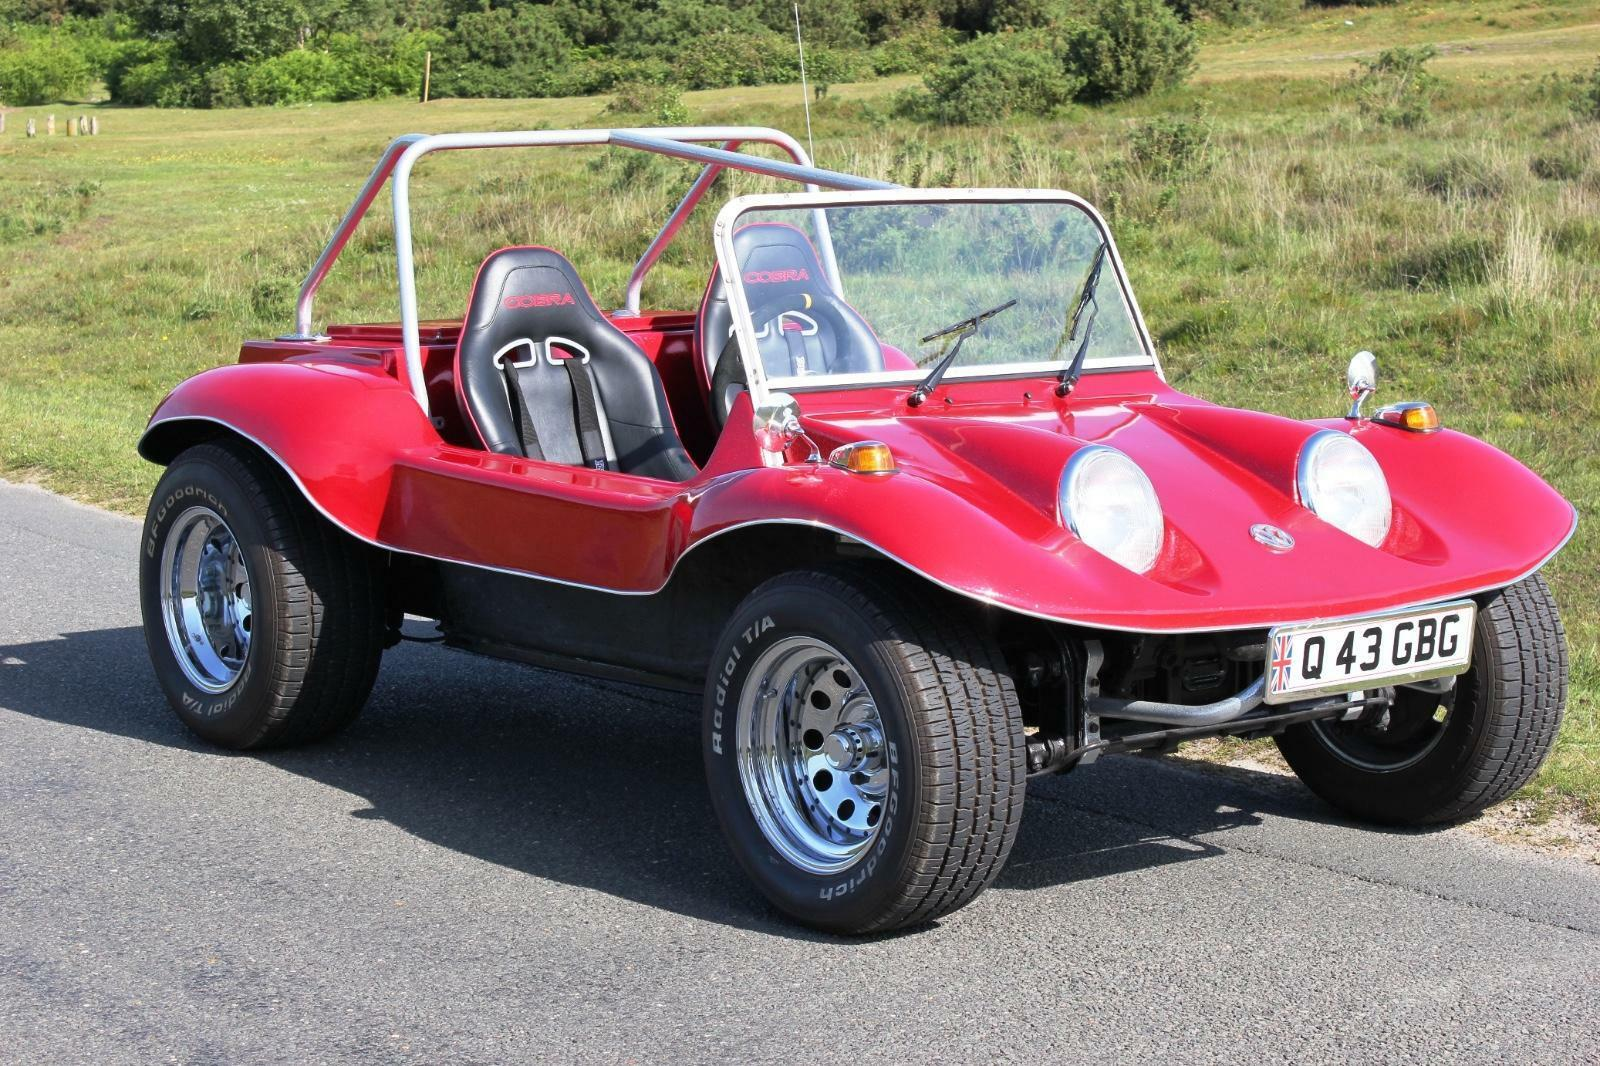 vw beach buggy 1968 dune buggy 9 picclick uk. Black Bedroom Furniture Sets. Home Design Ideas